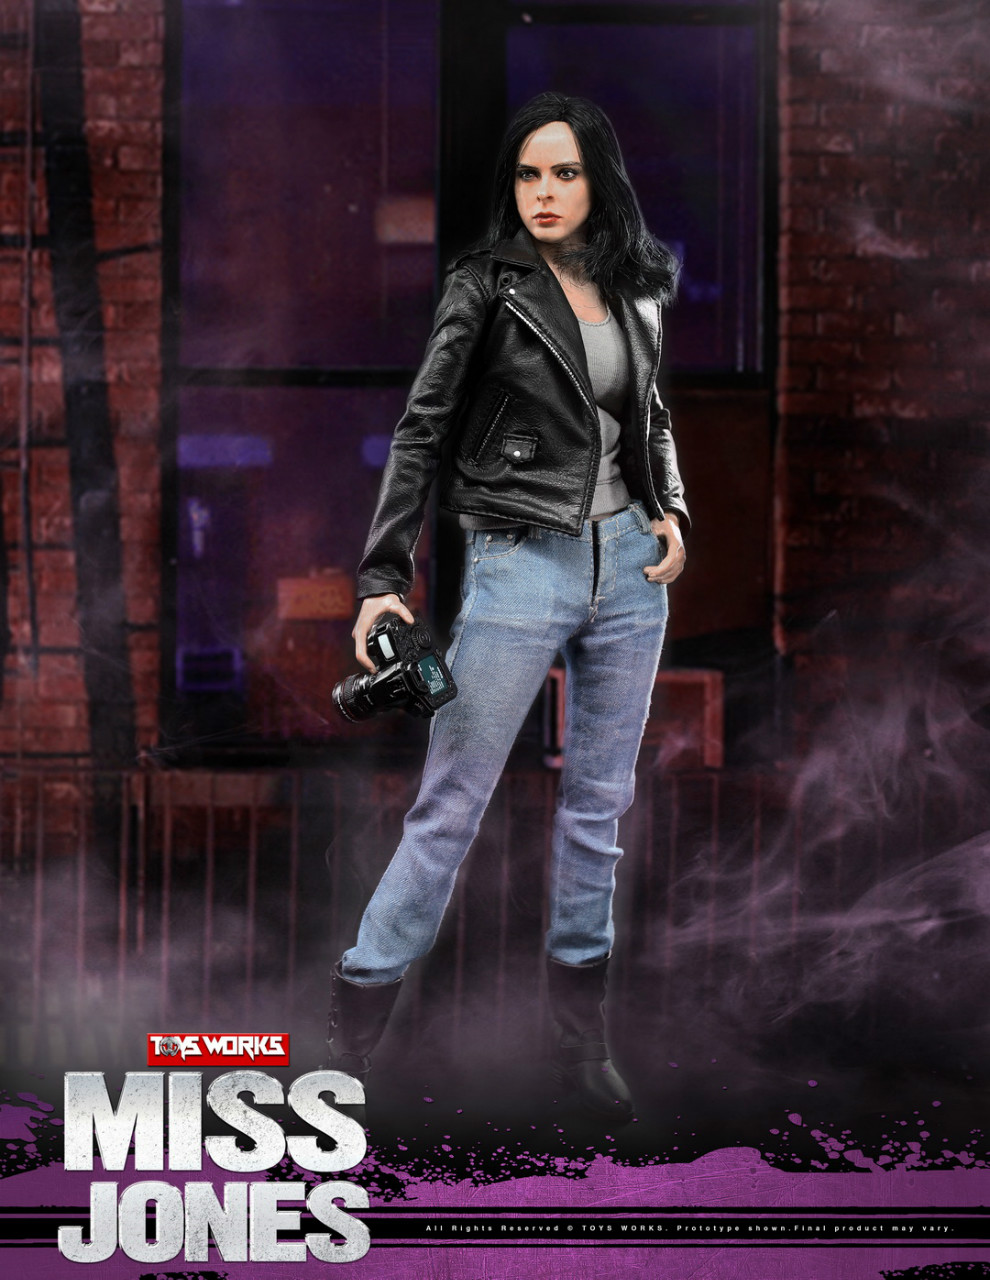 tv - NEW PRODUCT: TOYS WORKS New: 1/6 Miss Jones Miss Jones can move TW007 19163613